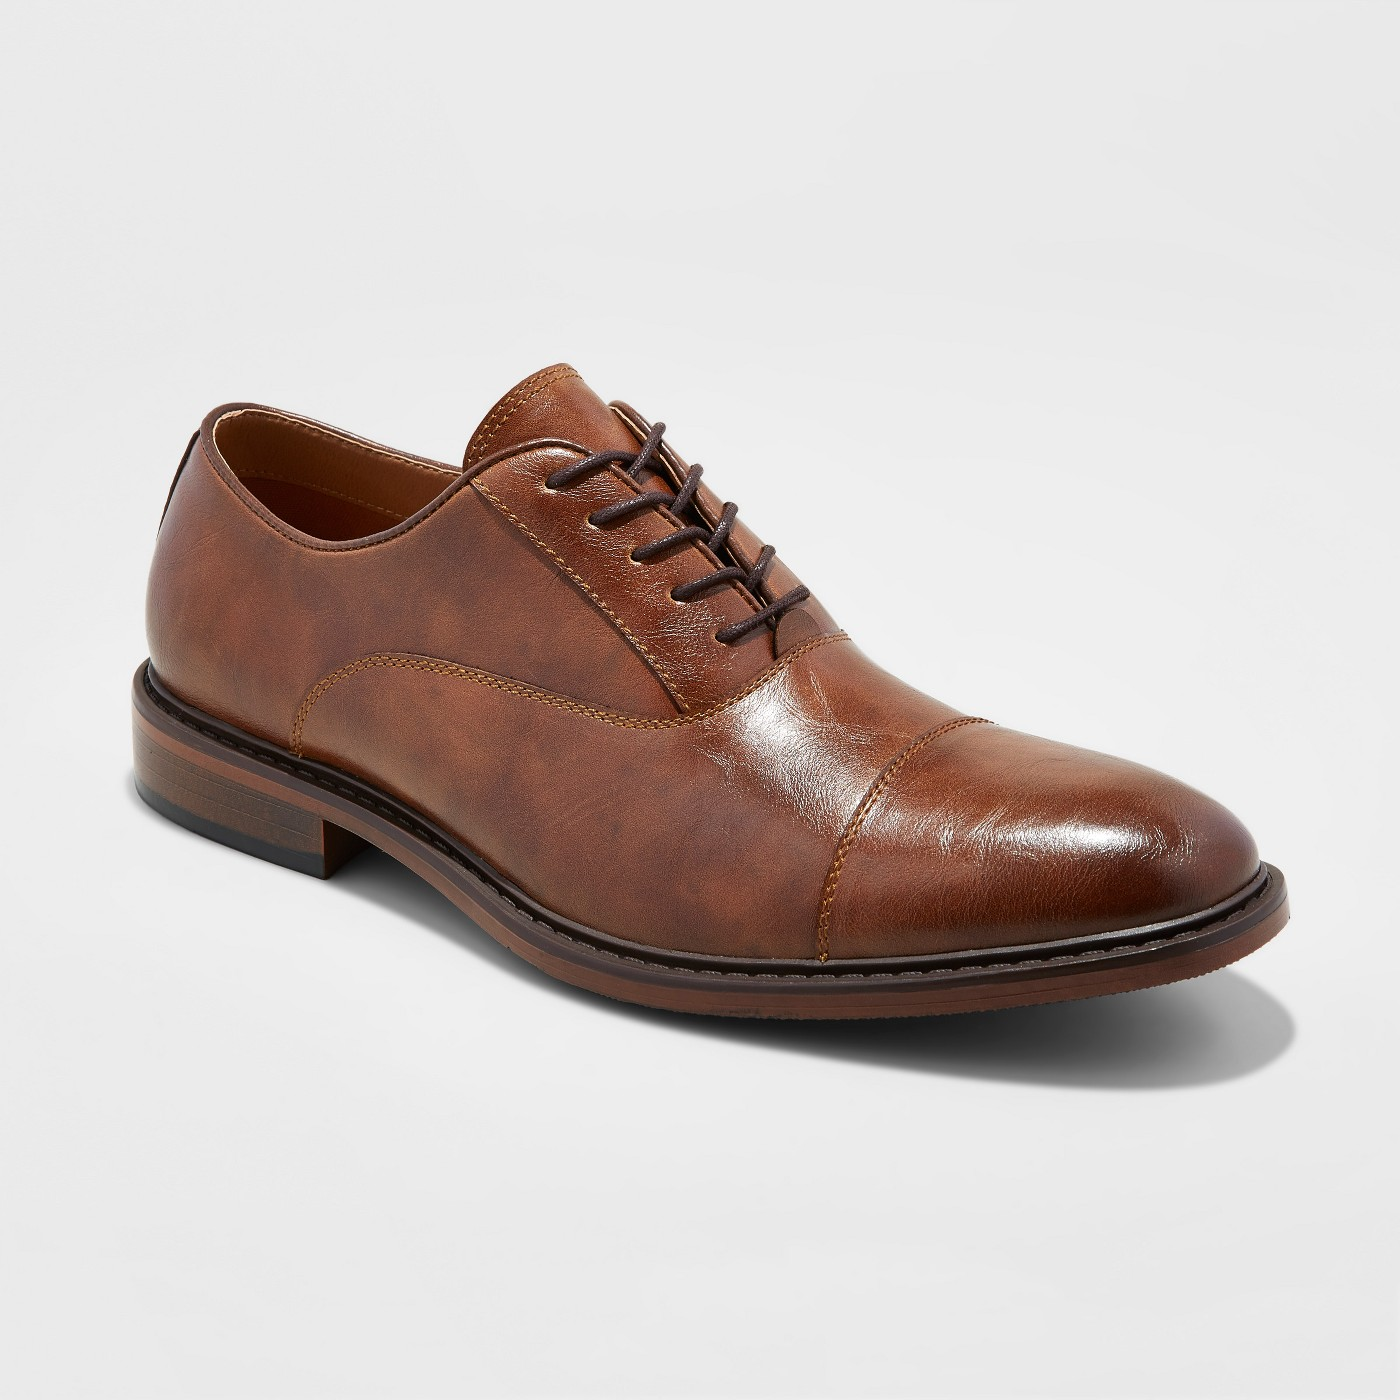 Classic and comfortable men\'s dress shoe.